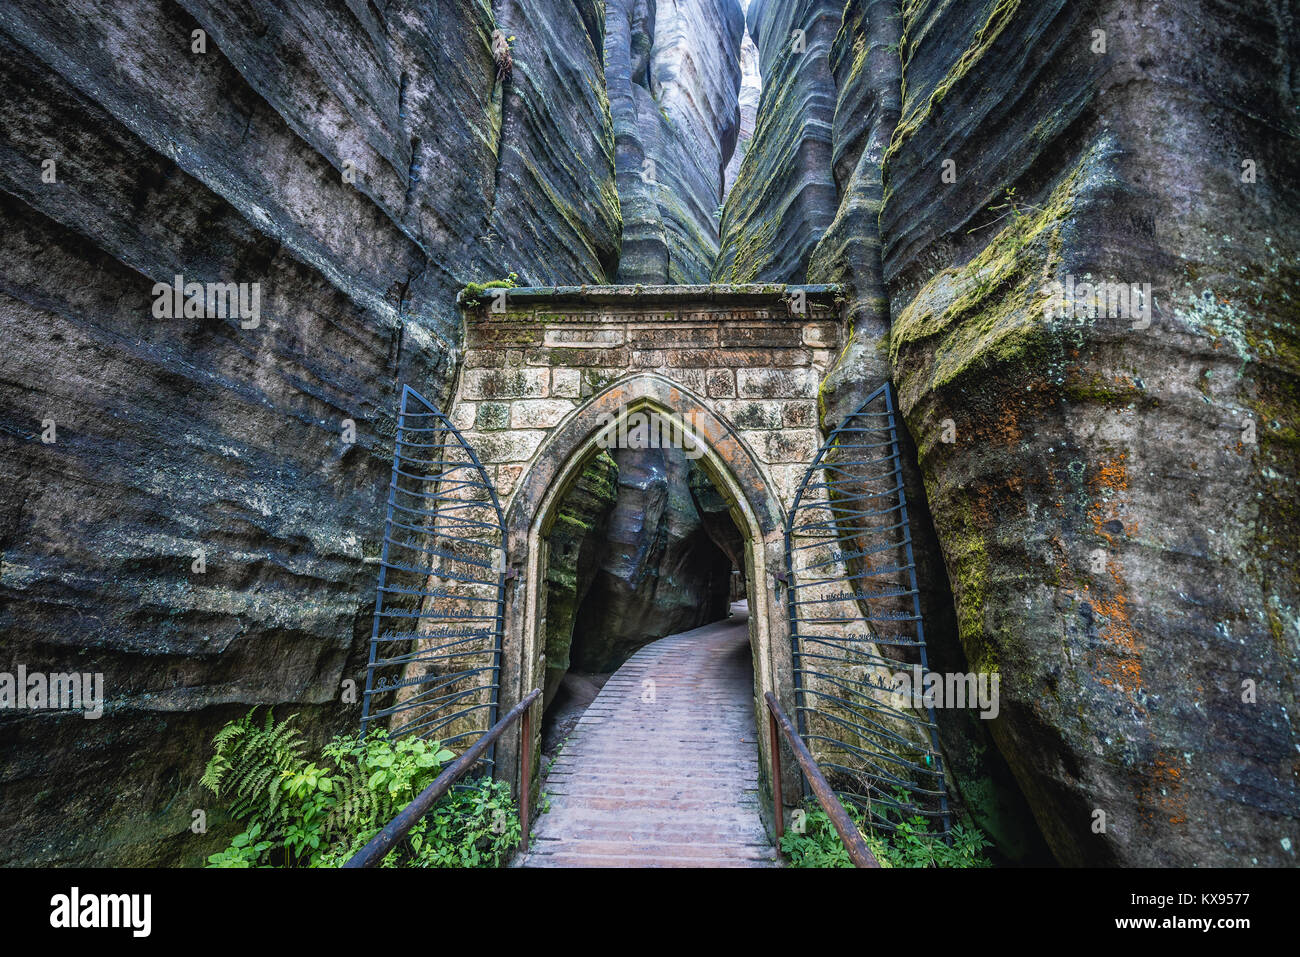 Gothic gate in National Nature Reserve Adrspach-Teplice Rocks near Adrspach village in northeastern Bohemia region, - Stock Image